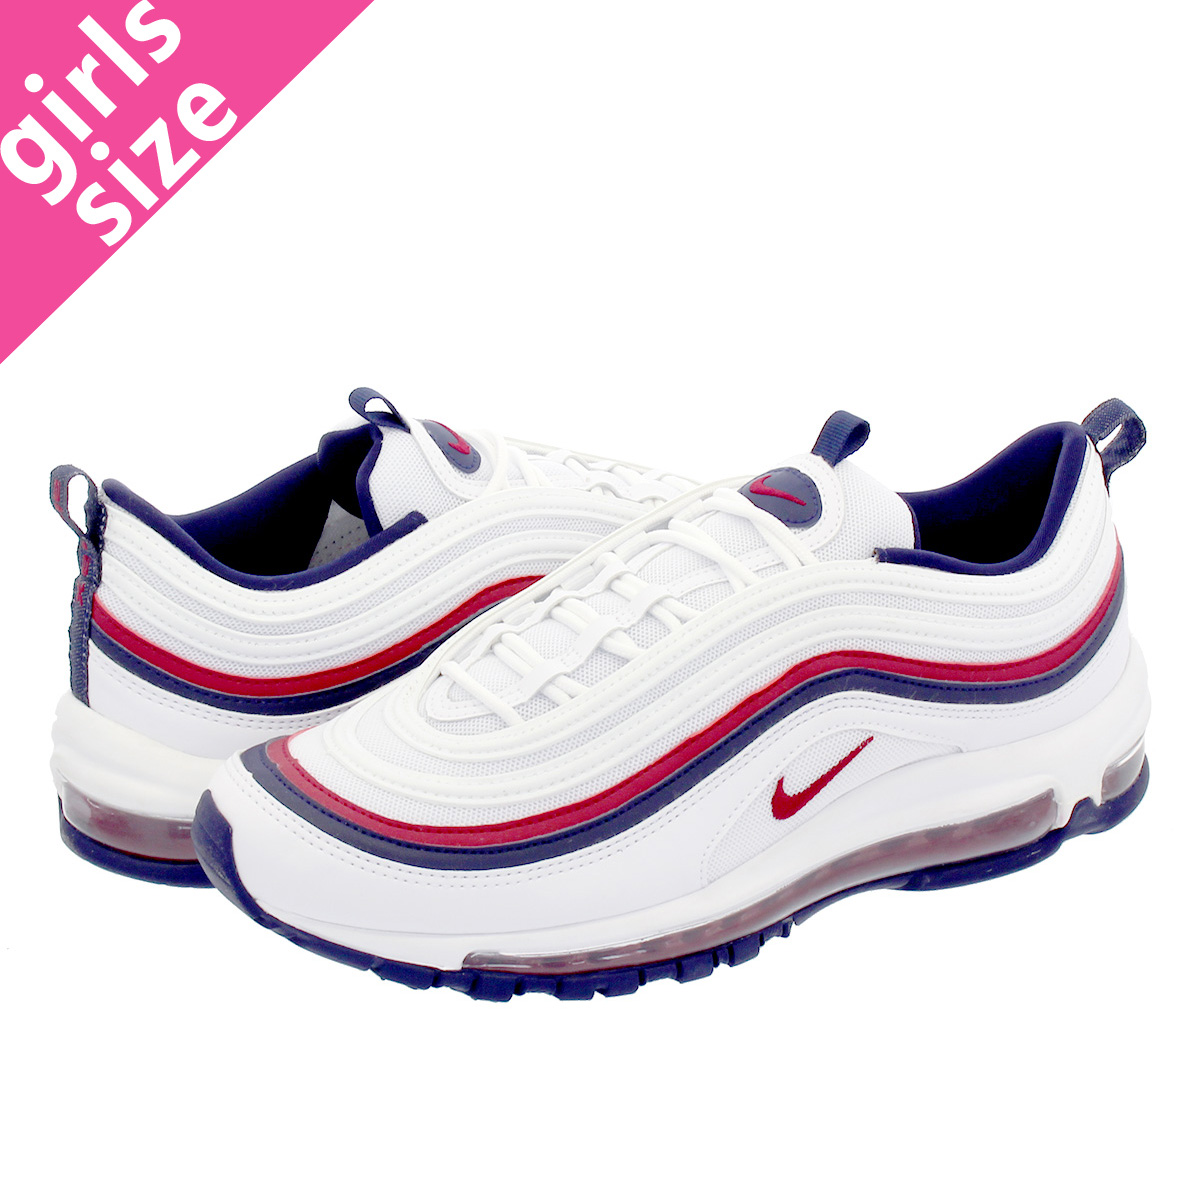 nike air max 97 white blackened blue red crush